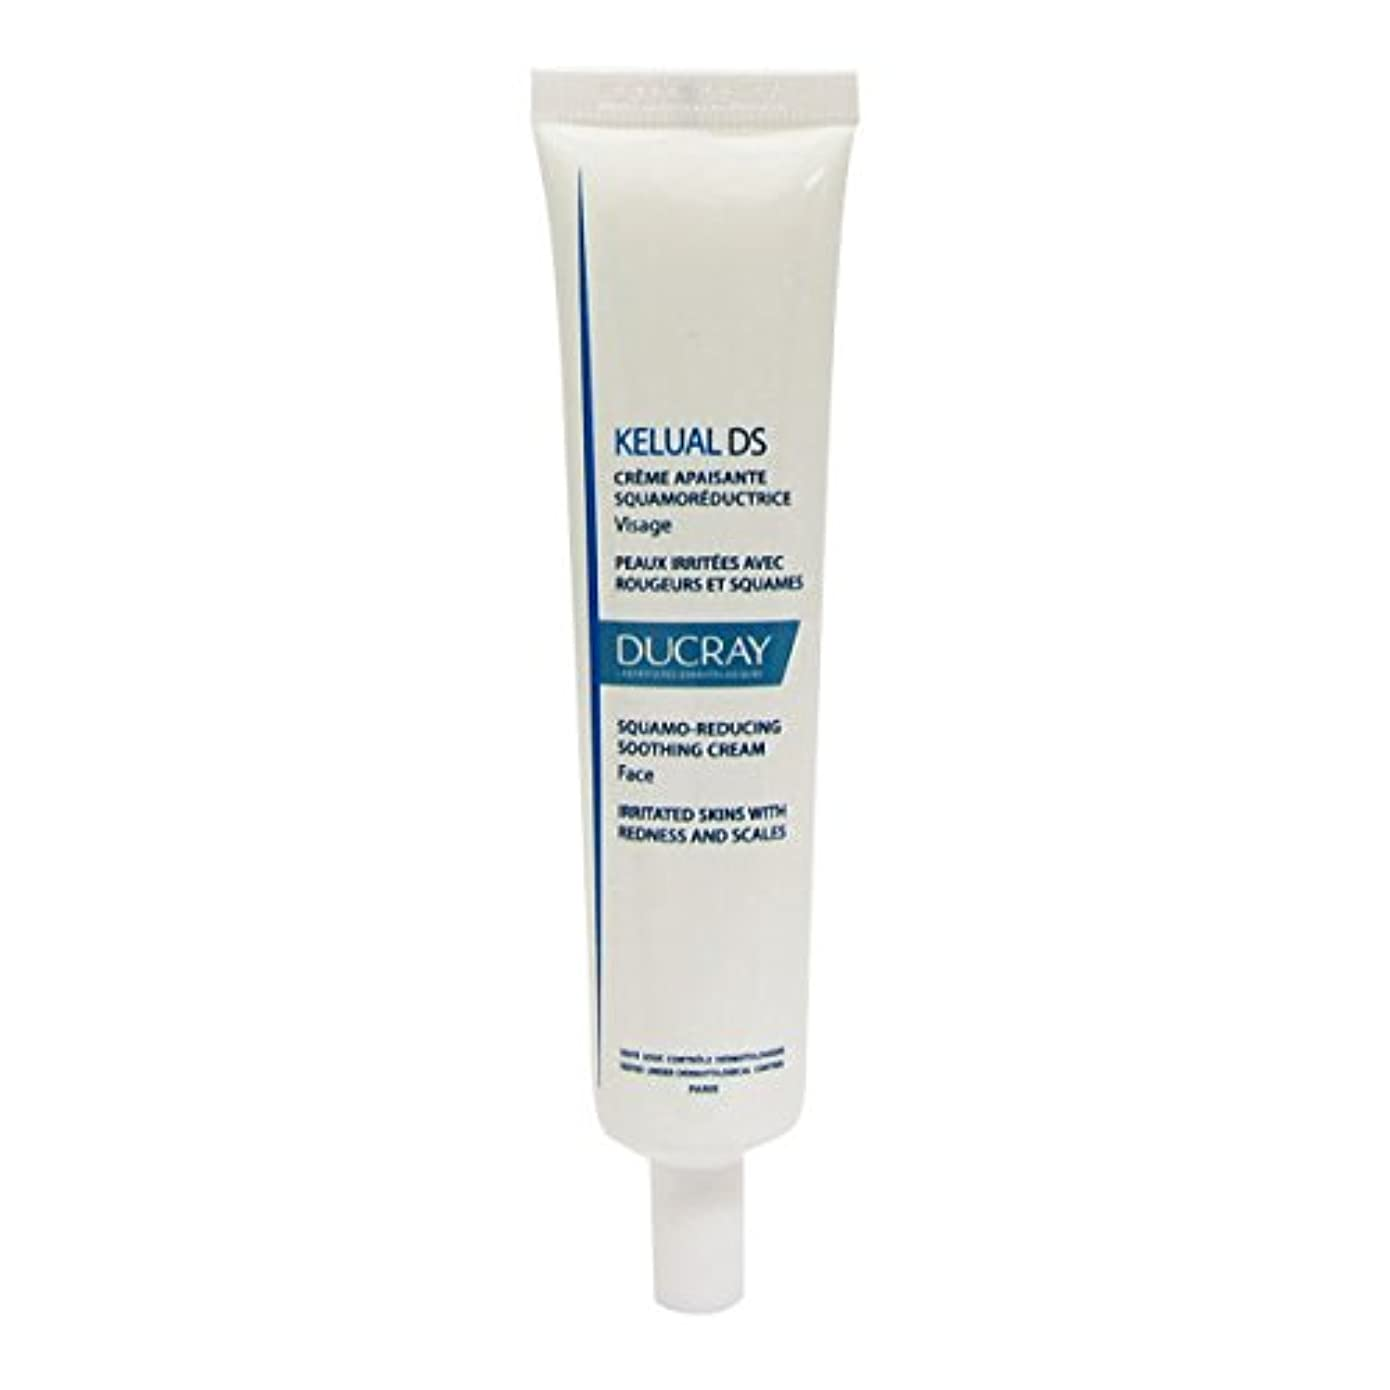 Ducray Kelual Ds Cream 40ml [並行輸入品]